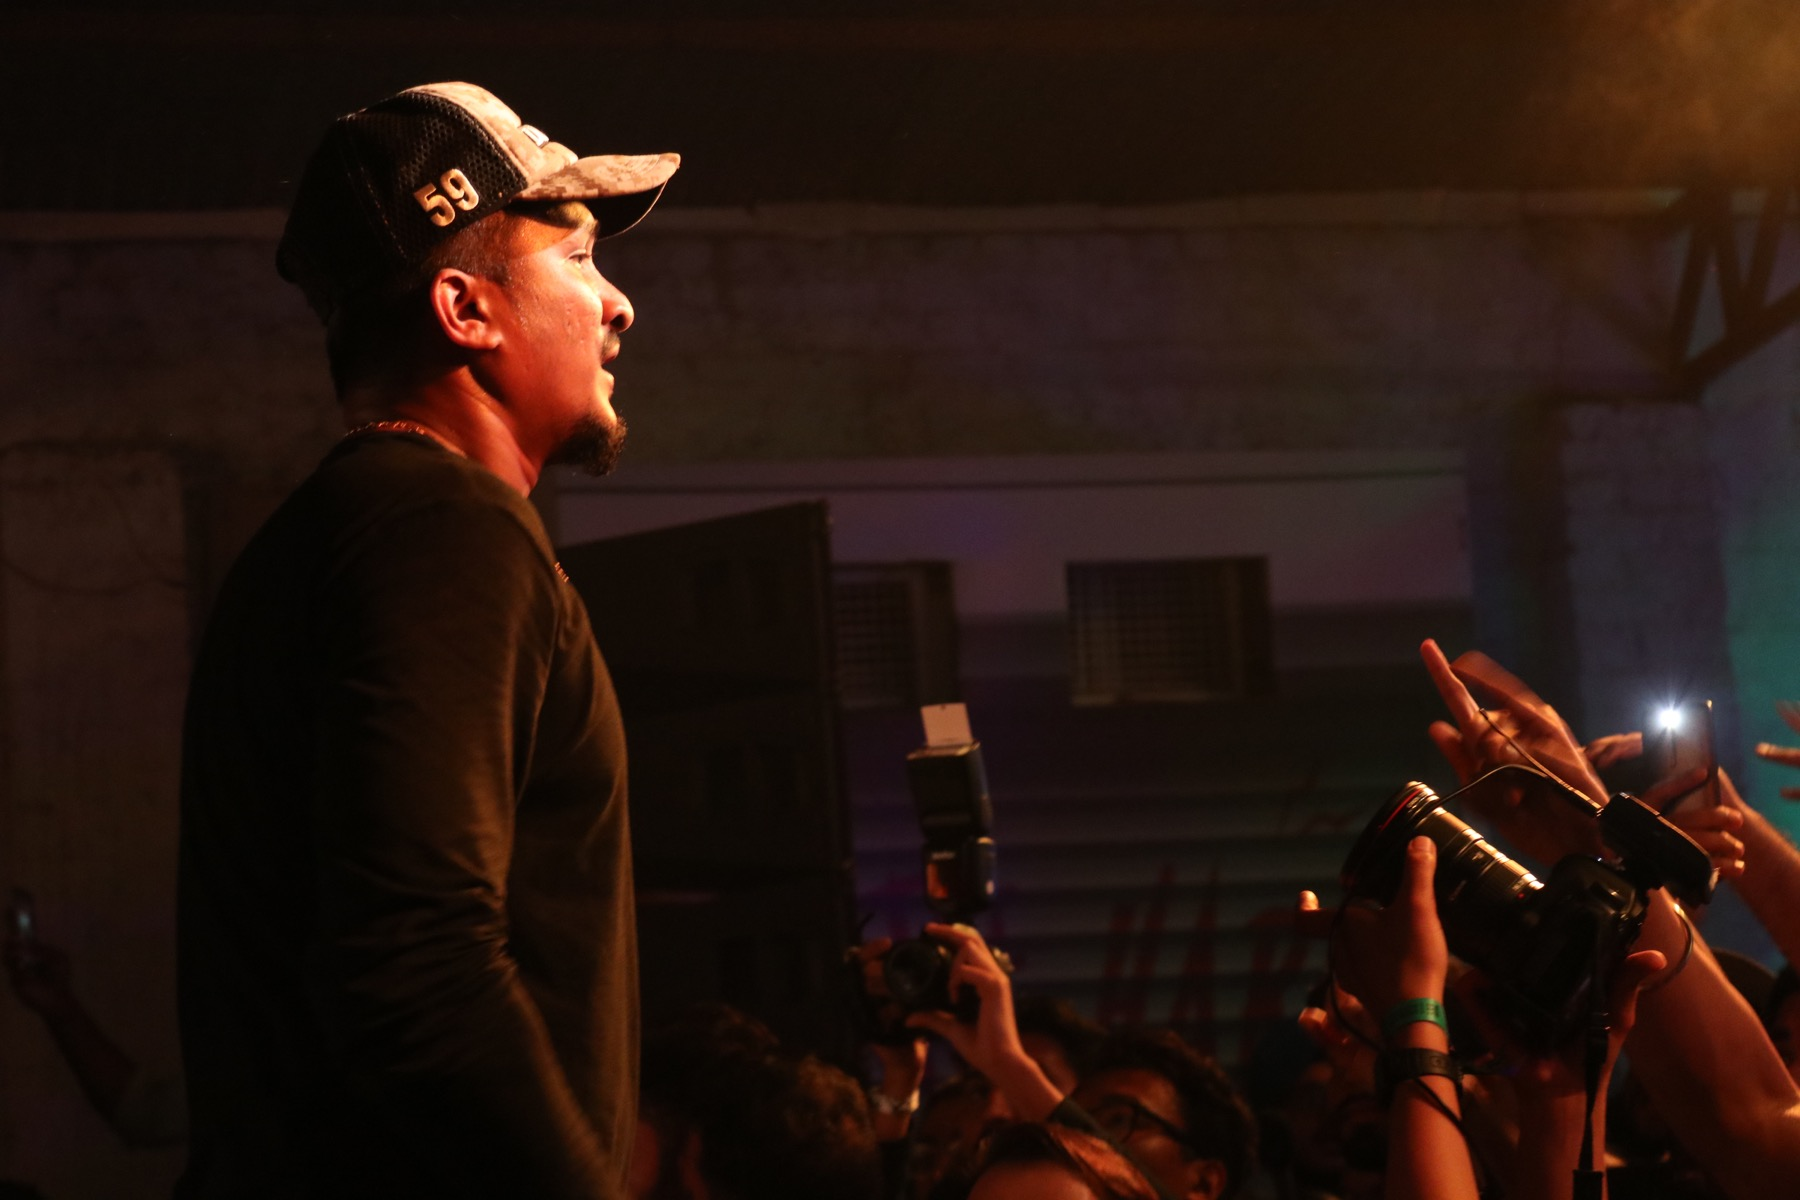 Homegrown India presents HGStreet in Mumbai on March 18, 2018, a celebration of sneaker and street culture - Performances by local and international musicians like divine and natasha diggsCopy of IMG_5994.JPG